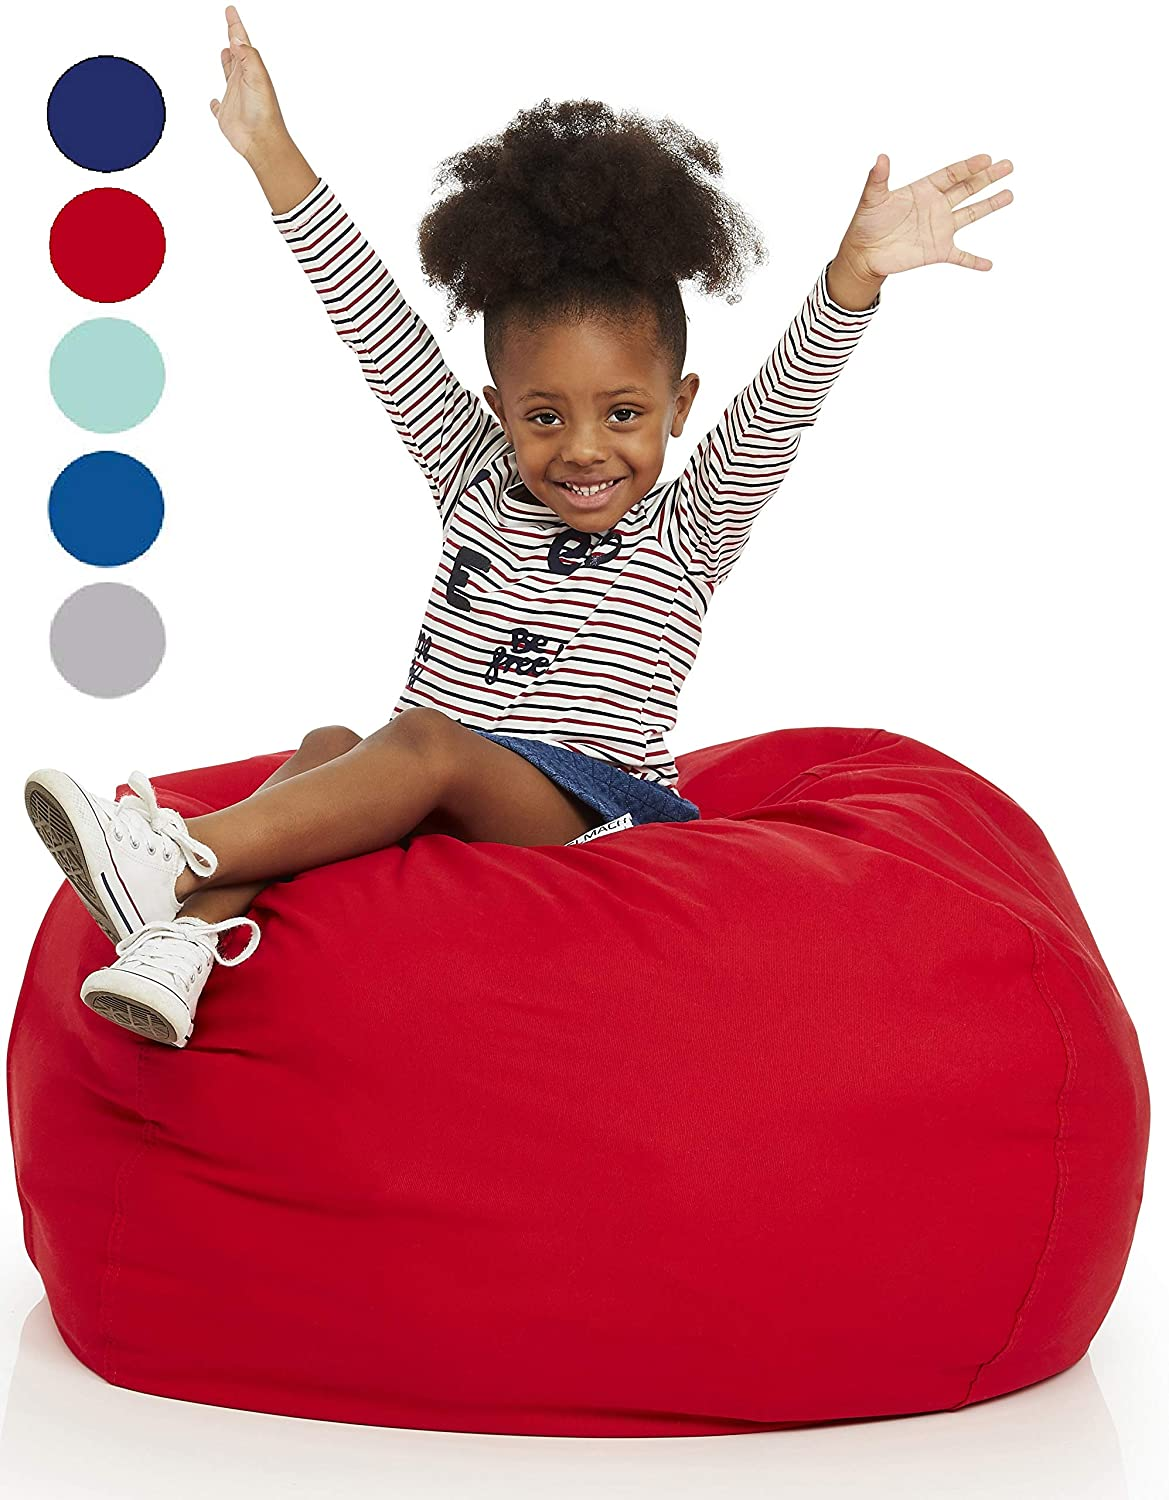 """Delmach Stuffed Animal Bean Bag   100% Cotton Canvas (Red)   Storage Bean Bag Cover   Cool Kids Chair   Room Organization   Toy Storage Bag   Extra Large 38"""""""